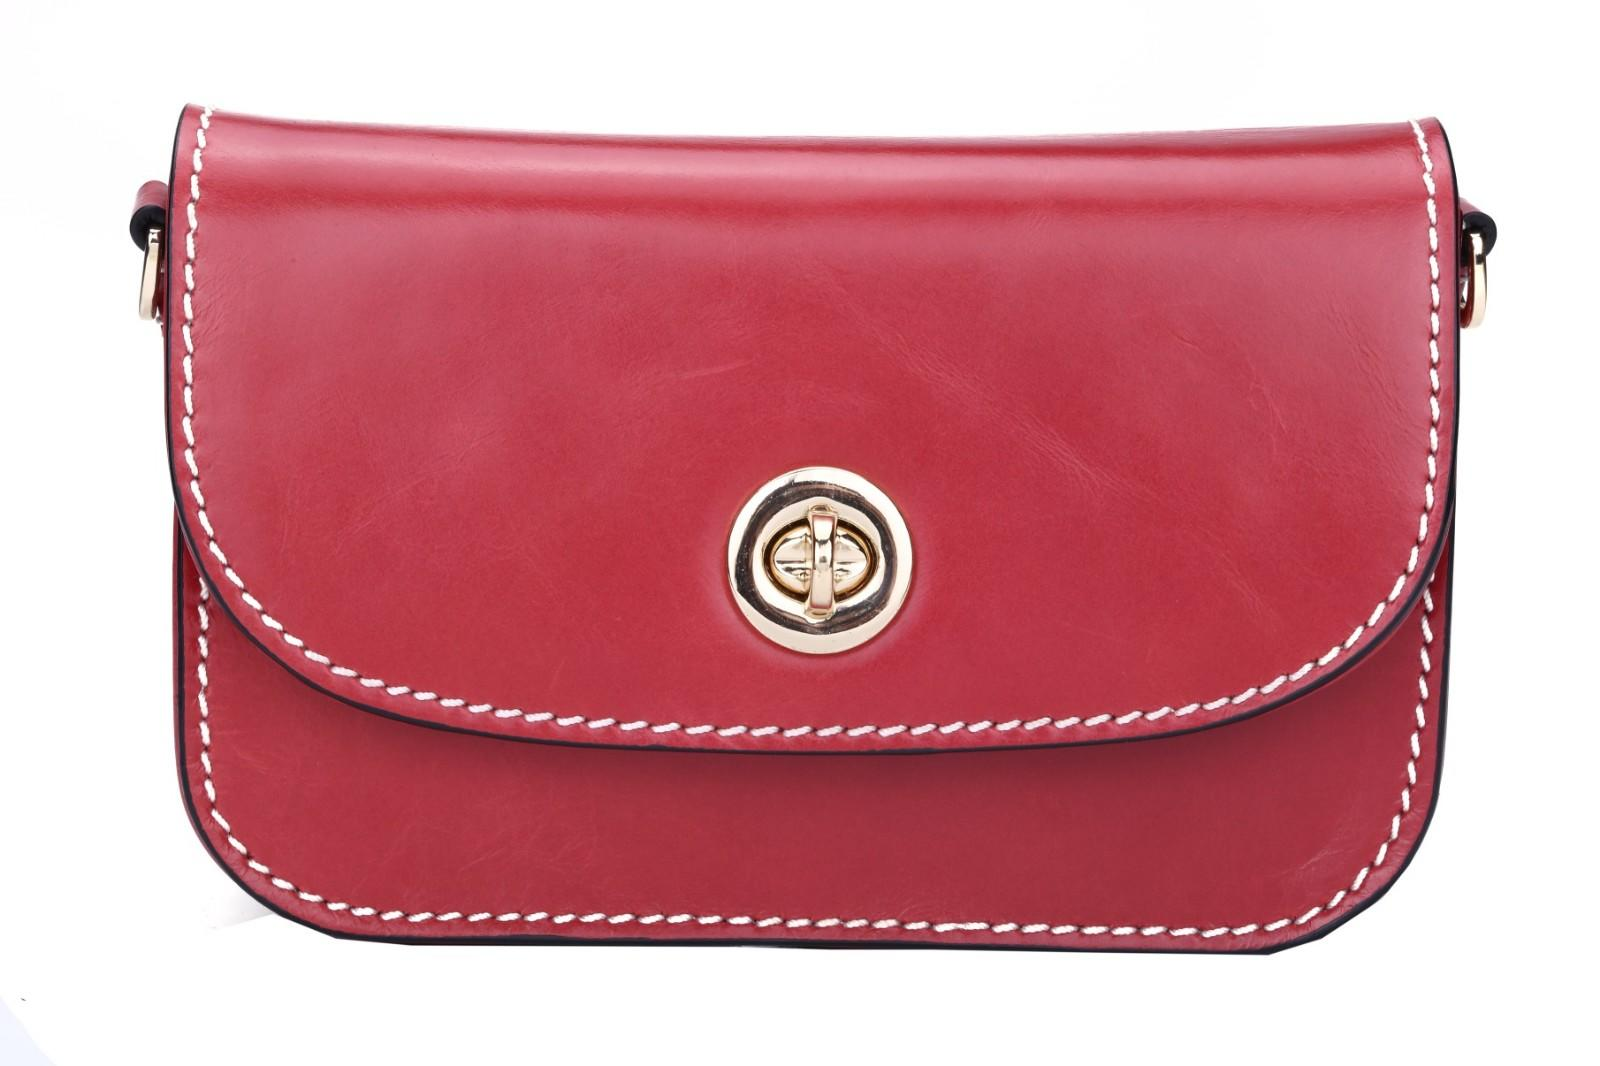 GF bags long cheap clutch bags check now for women-1